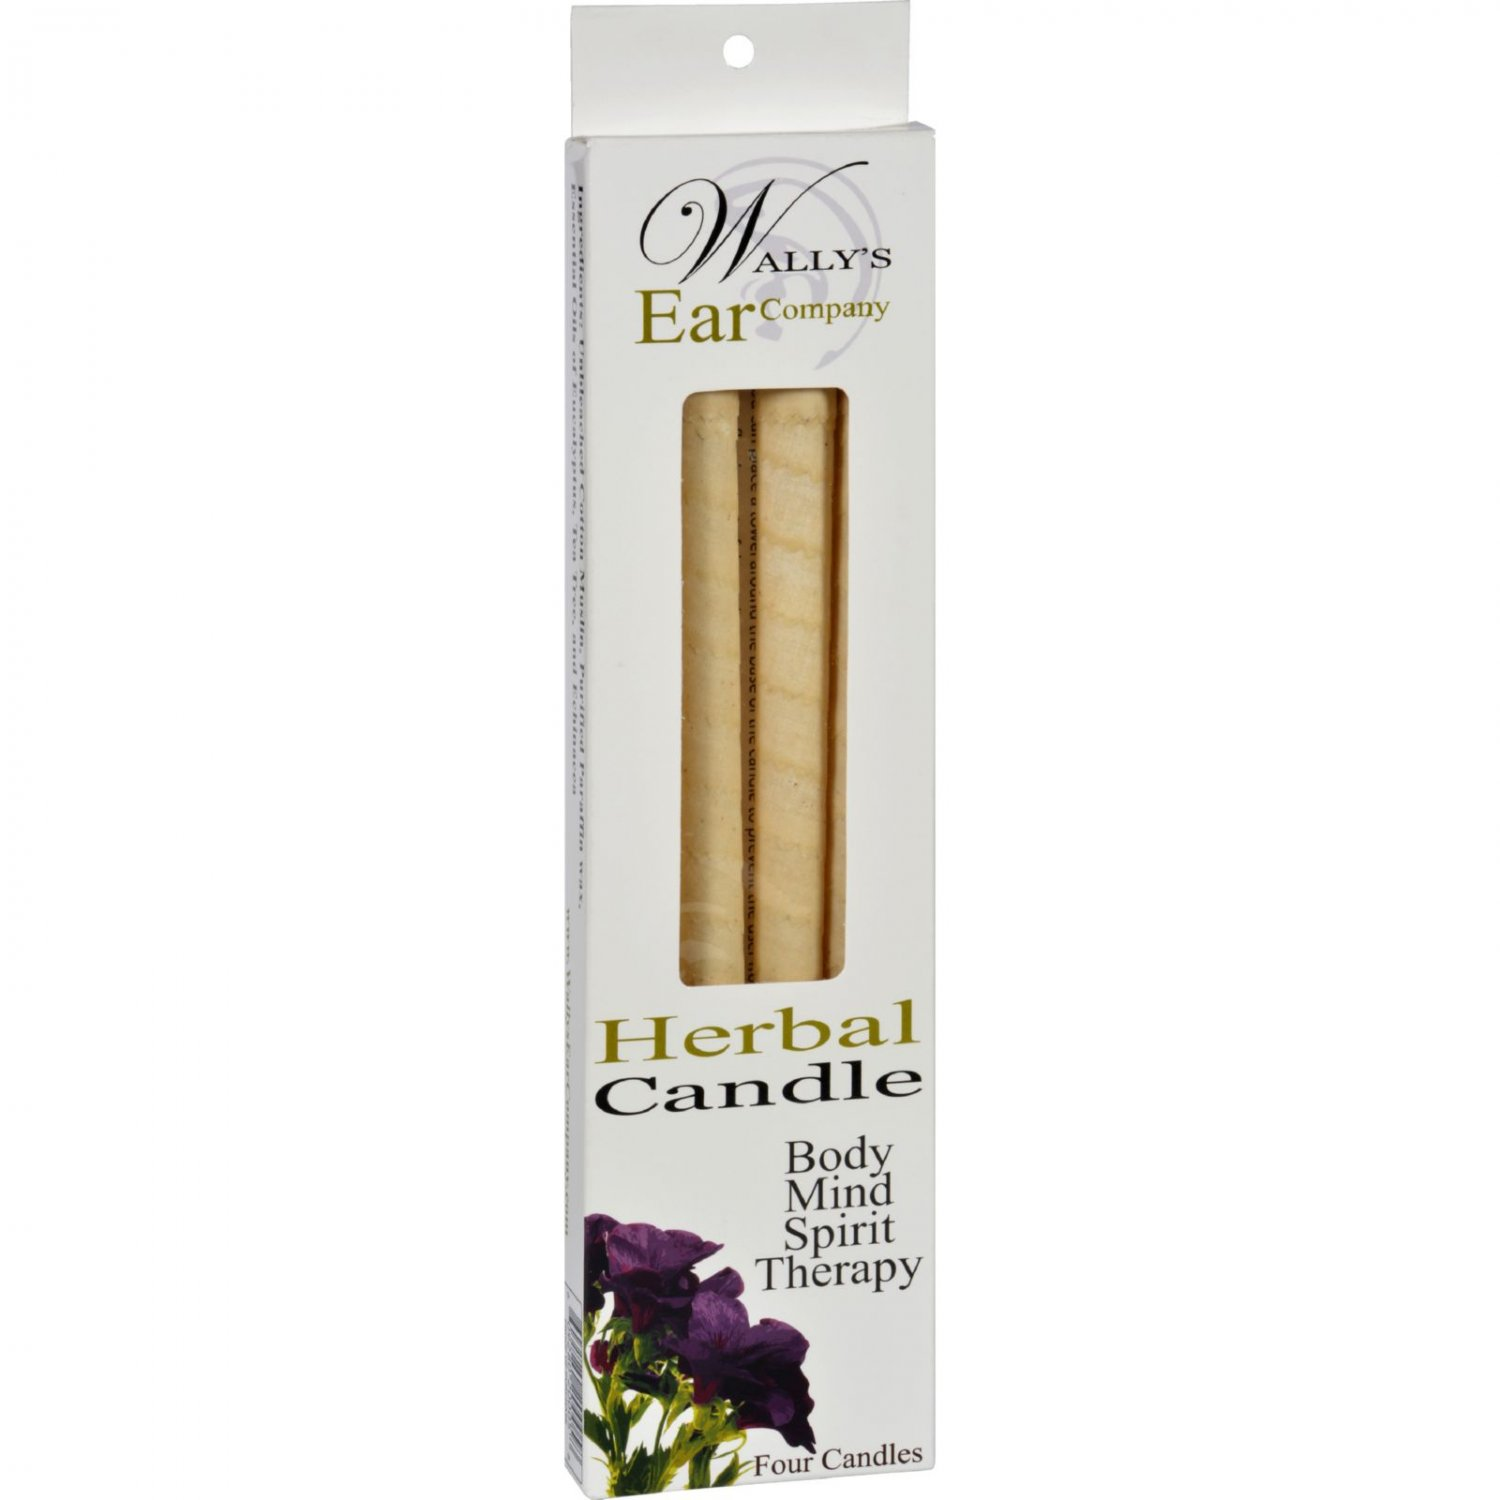 Wally's Candle - Herbal - 4 Candles